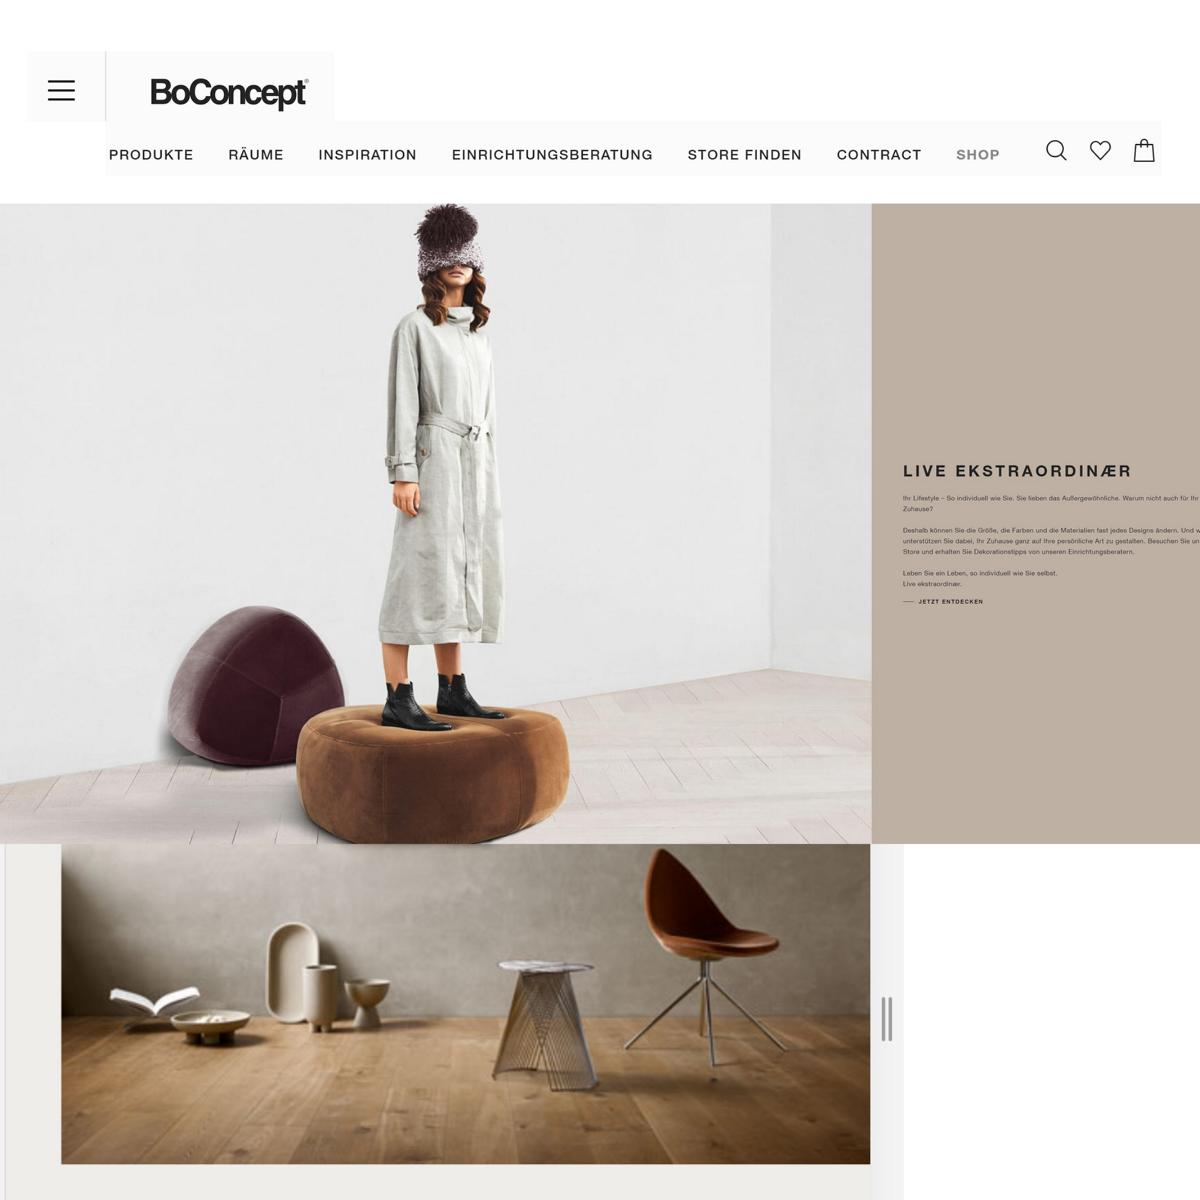 style hannover boconcept hannover ONline shop B - Support your locals